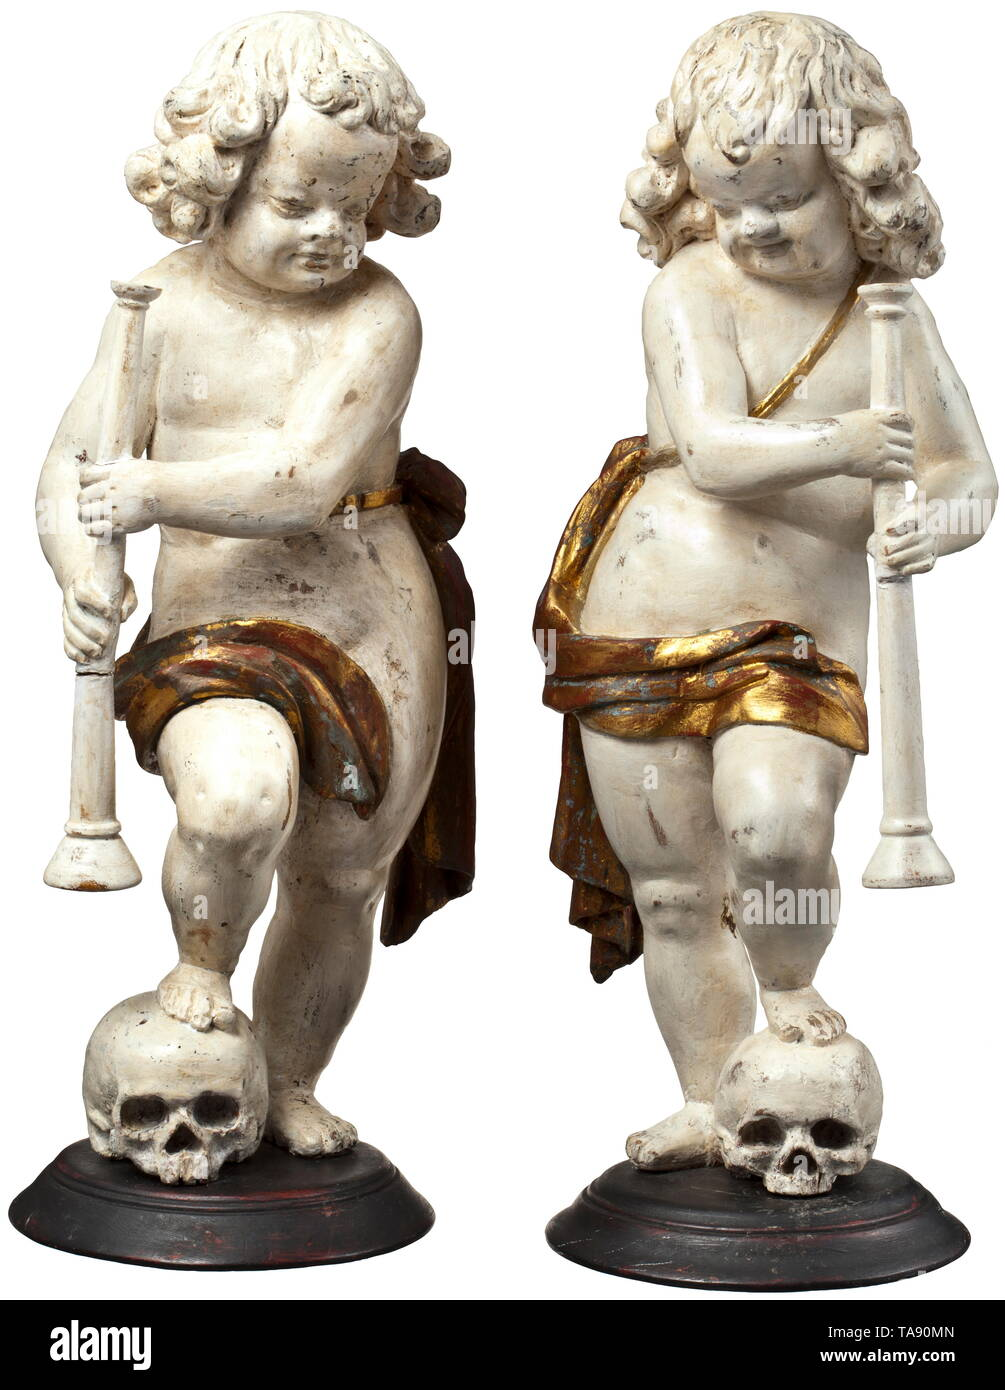 A pair of German or Flemish cherubs, circa 1700 Three-dimensional carved figures of lime wood with old paint in white and gold. Depiction of boys in loincloths, each holding a flute and with a foot resting on a skull. On a round plinth (supplemented?). Height of each 50 cm. historic, historical, fine arts, art, 18th century, Additional-Rights-Clearance-Info-Not-Available Stock Photo